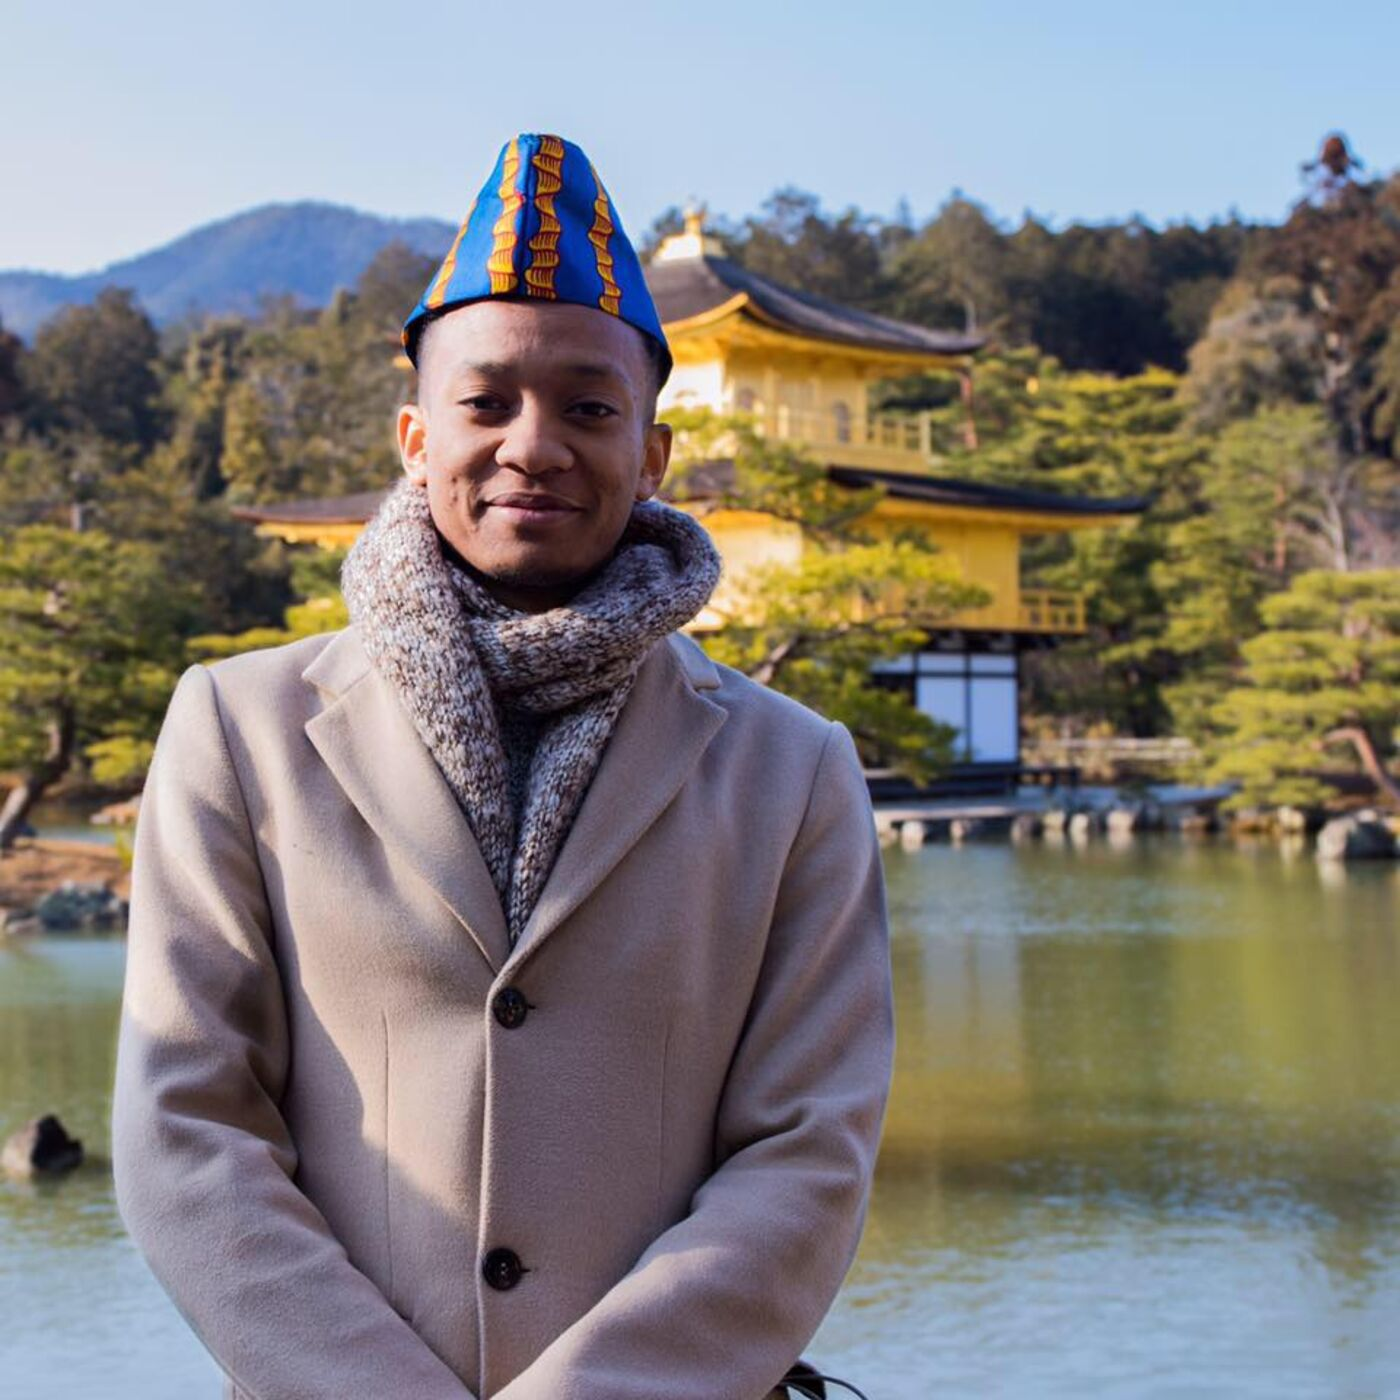 EP #3: The Afro-Asian Re(Vodu)tionary - Sena Voncujovi - on Voodoo in Africa, connecting Africa and Asia, and his entrepreneurial journey